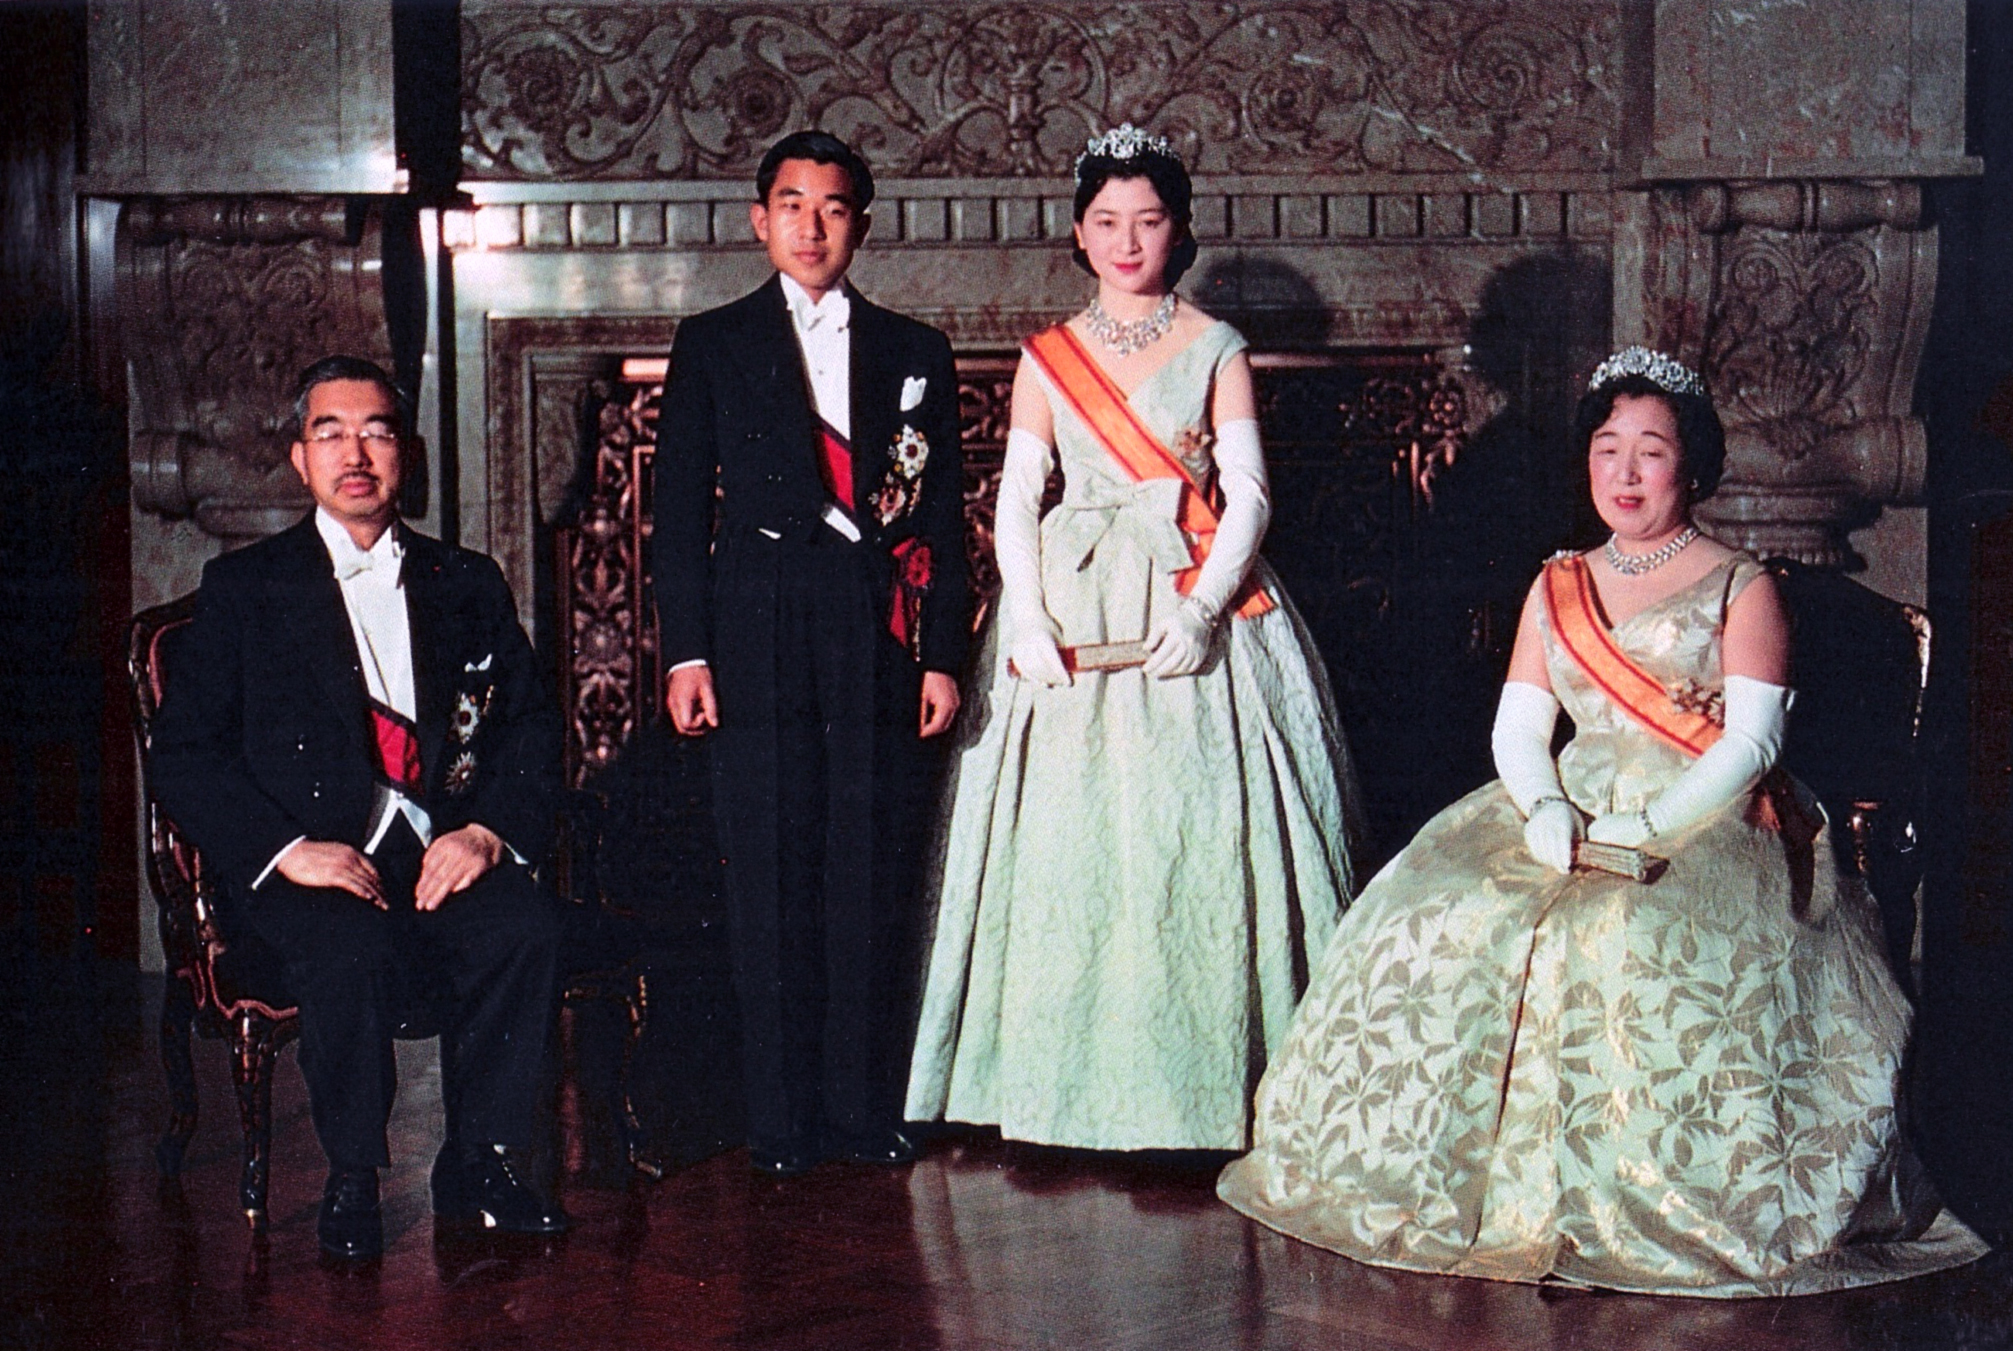 Emperor Shōwa and future Emperor Heisei on 10 April 1959